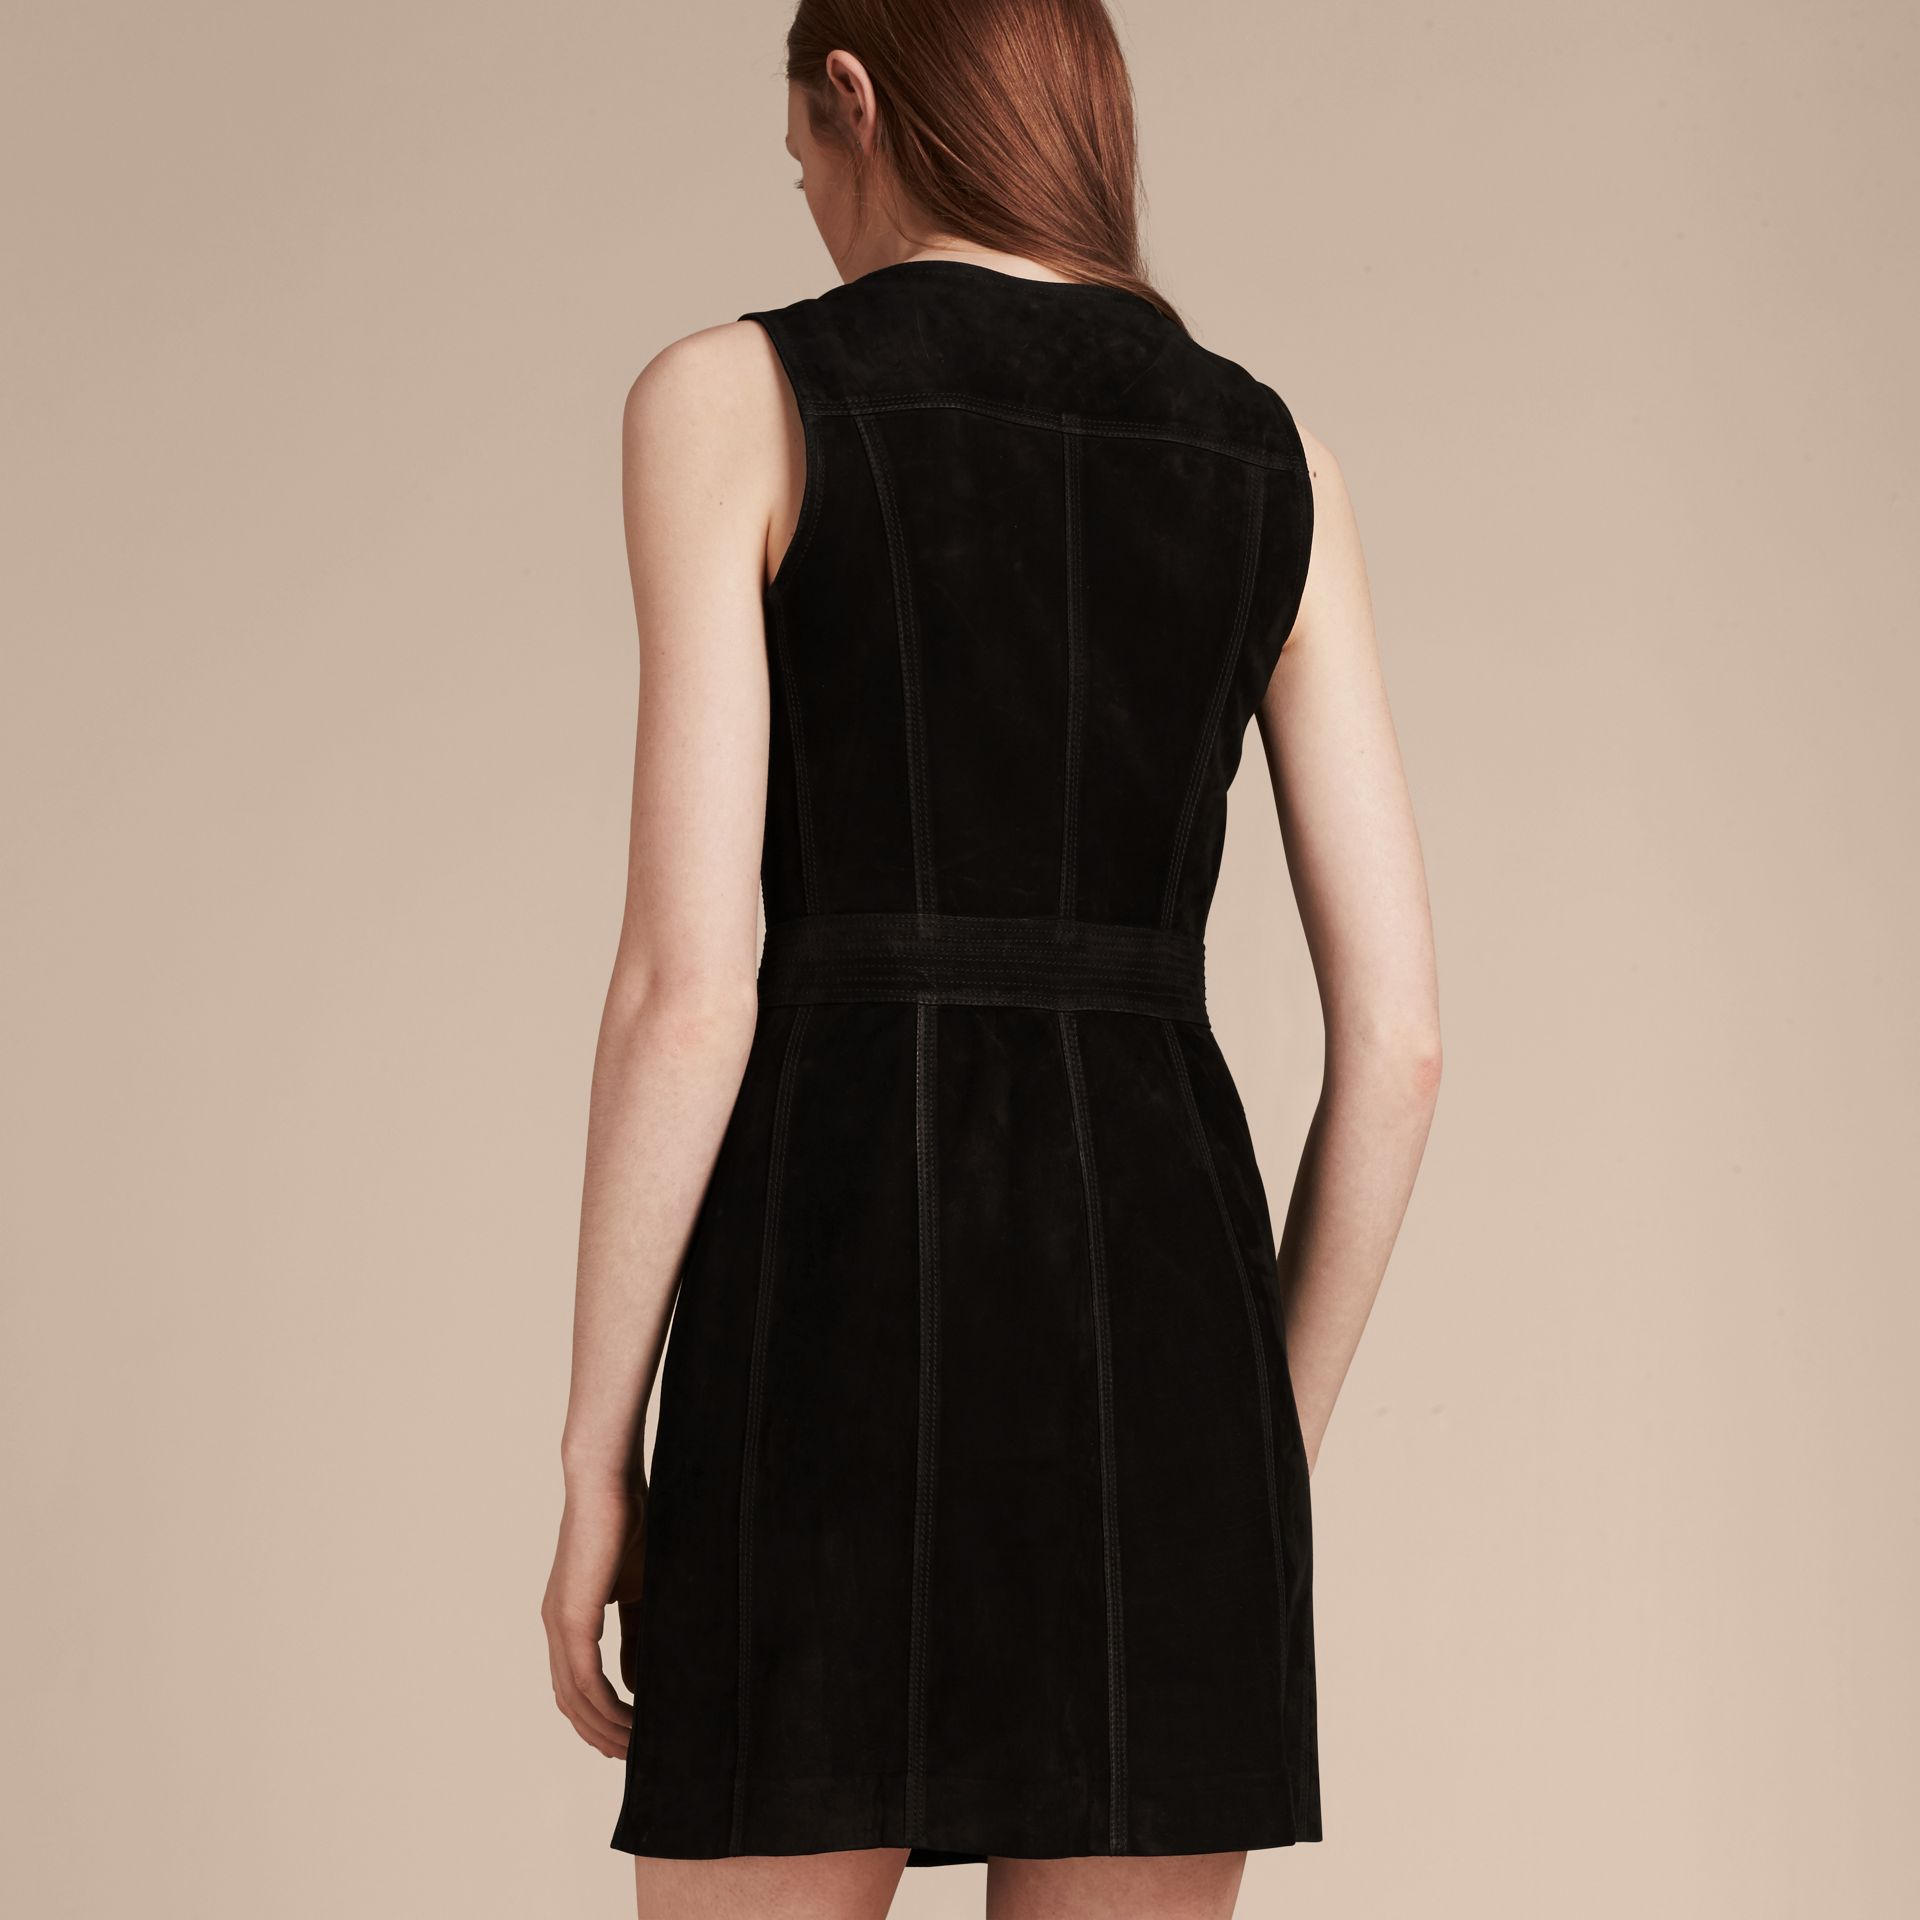 Black Nubuck Zip-front Dress - gallery image 3